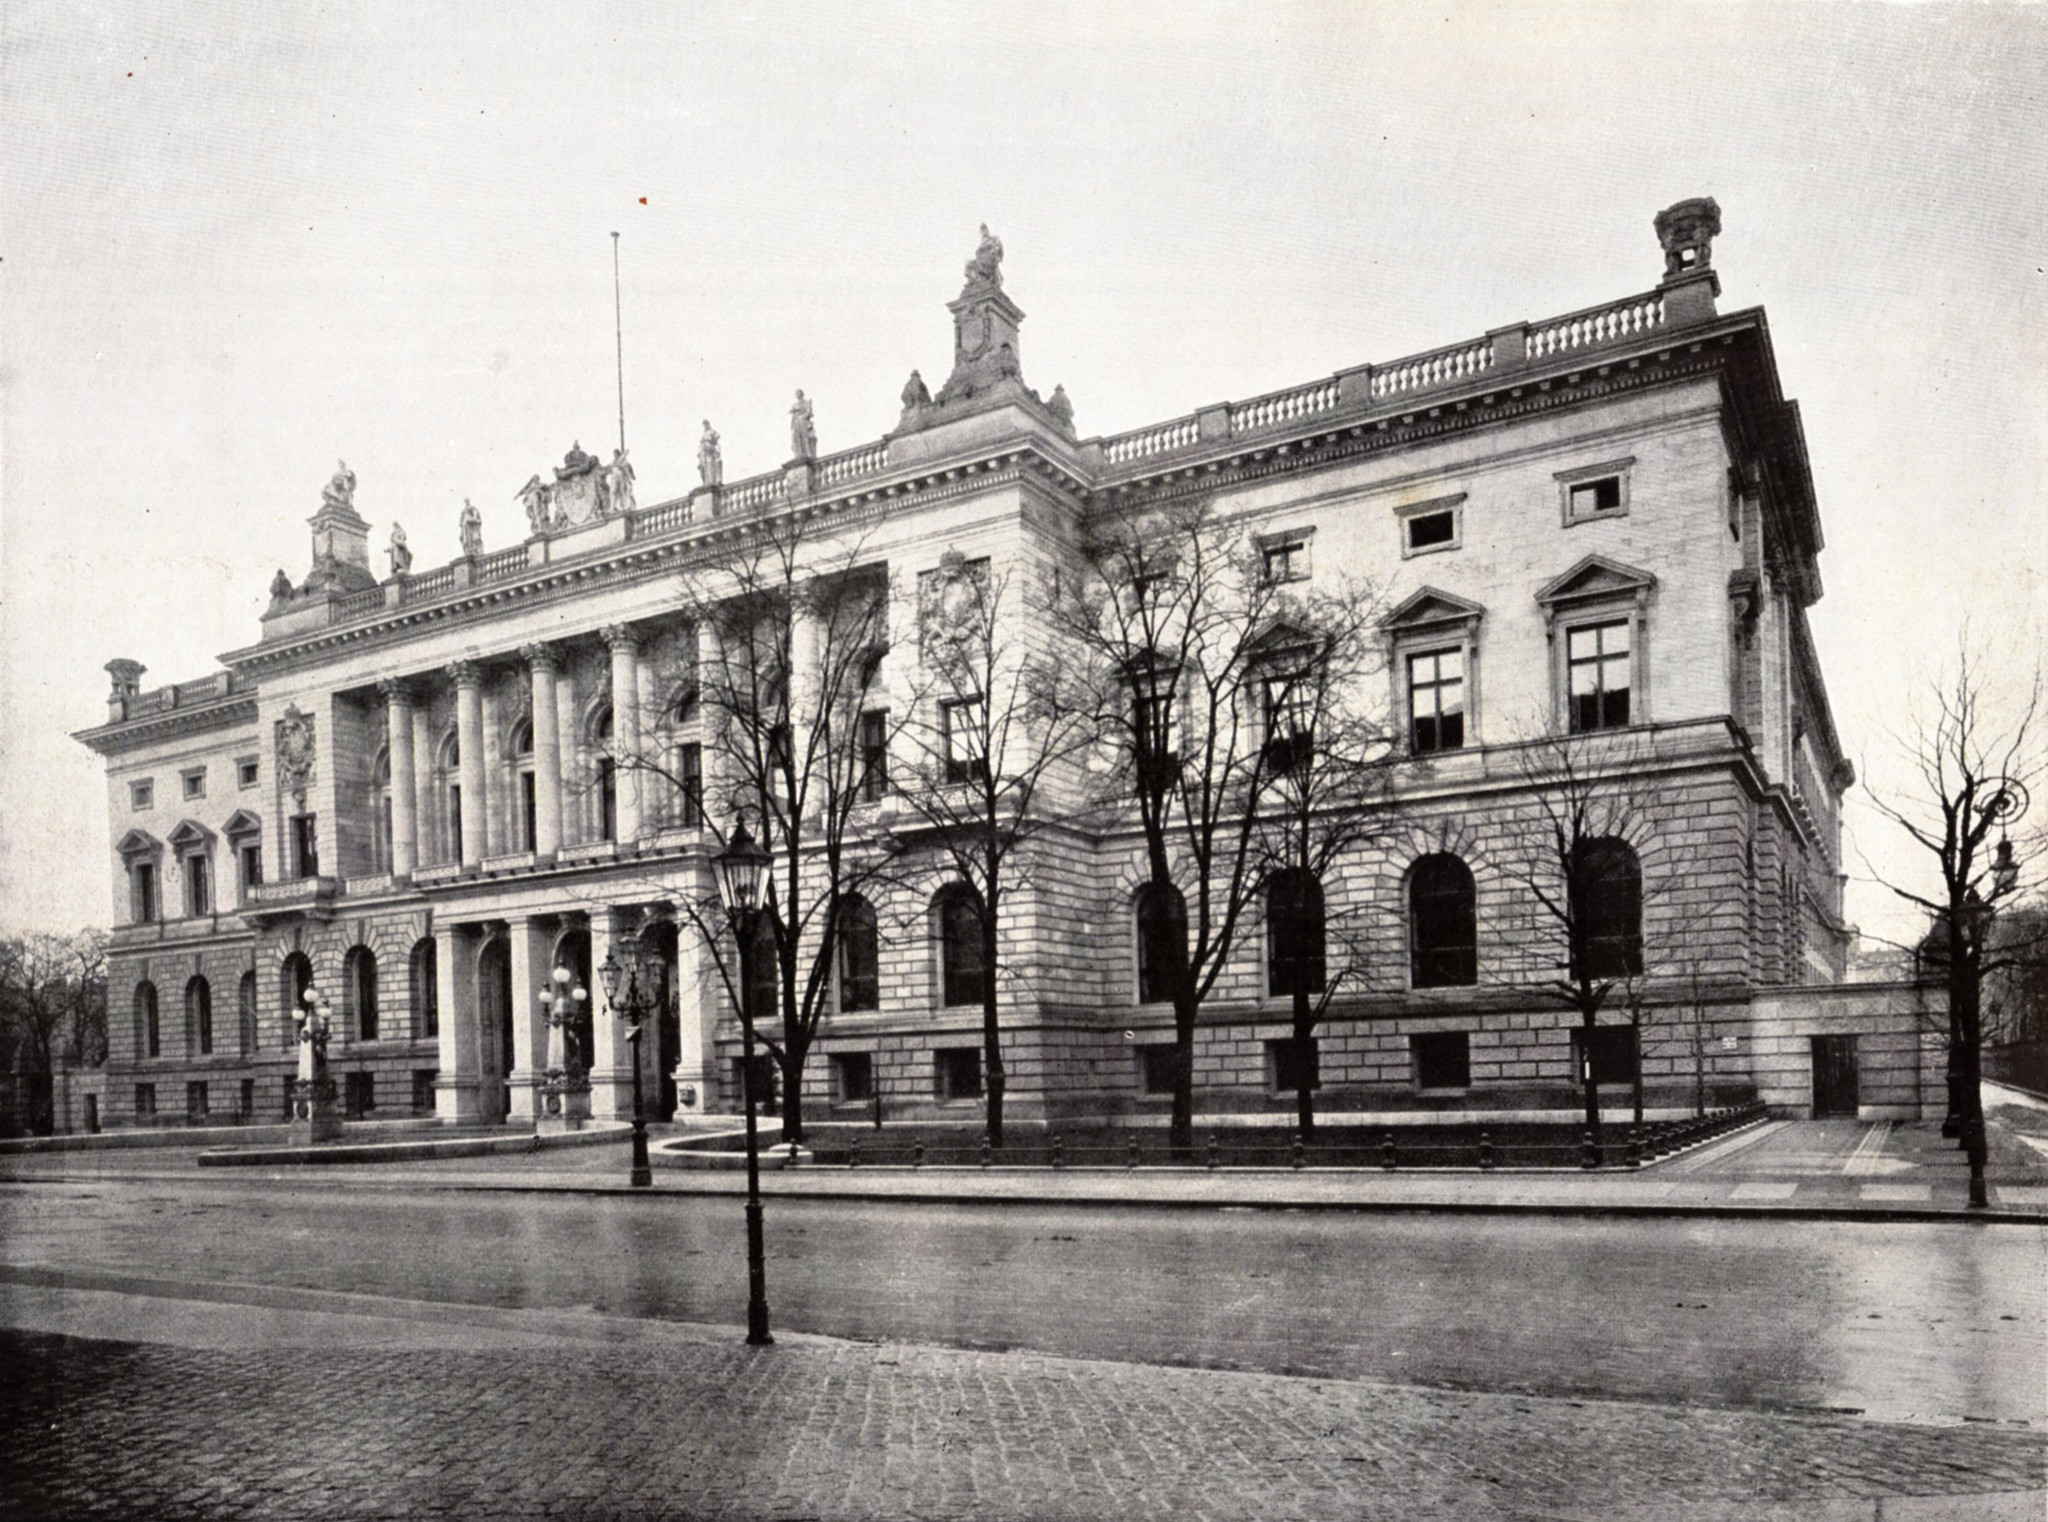 The Berlin Abgeordnetenhaus around 1900